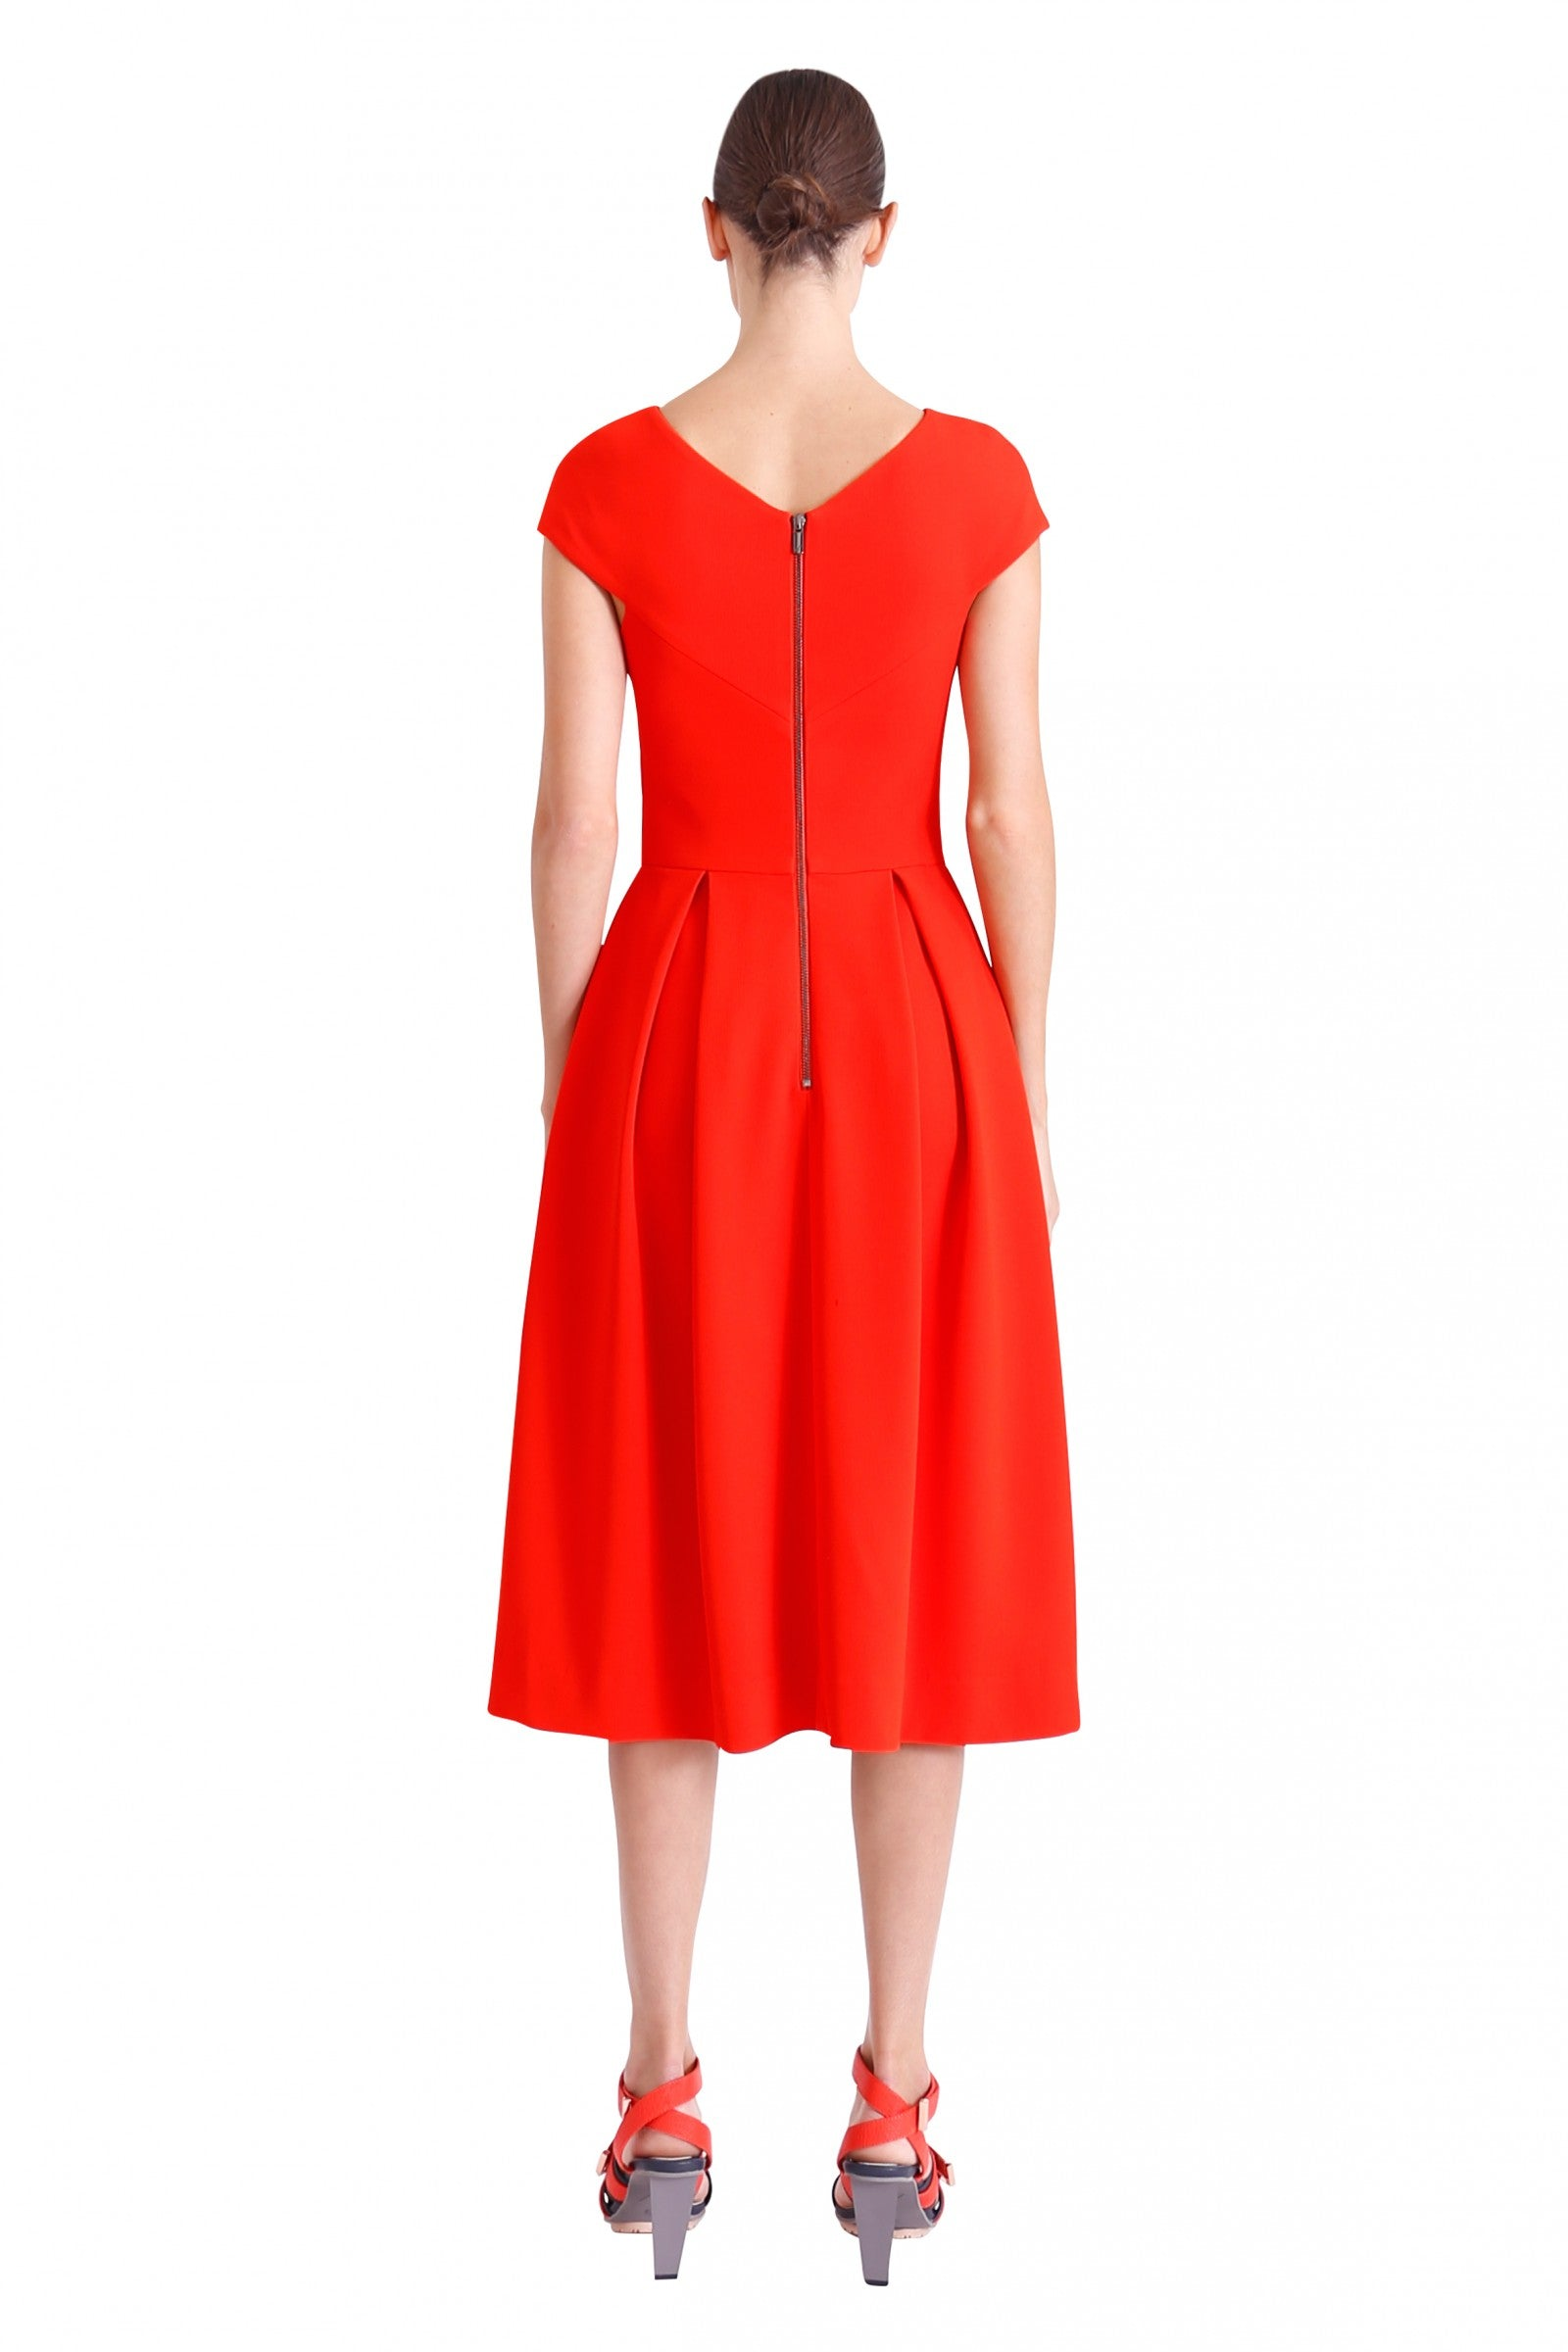 Ginger & Smart Endure Dress in Geranium